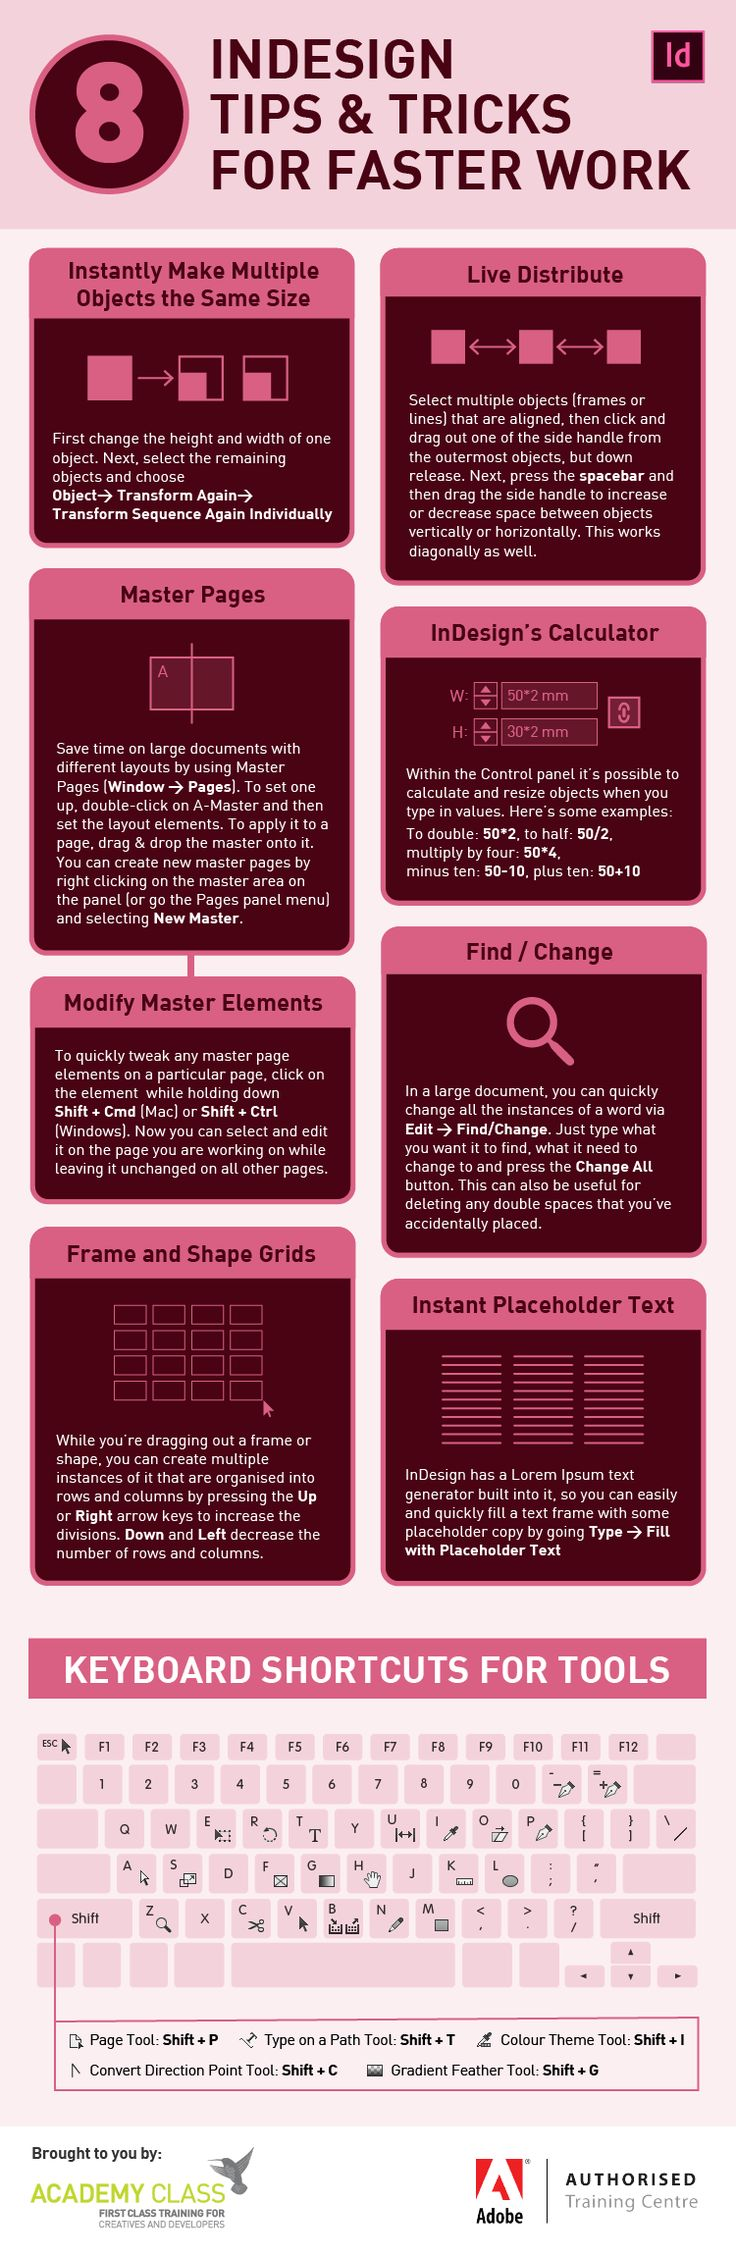 To know more log on to www.extentia.com (file://www.extentia.com/) #Extentia #Design Tips and Tricks Infographics